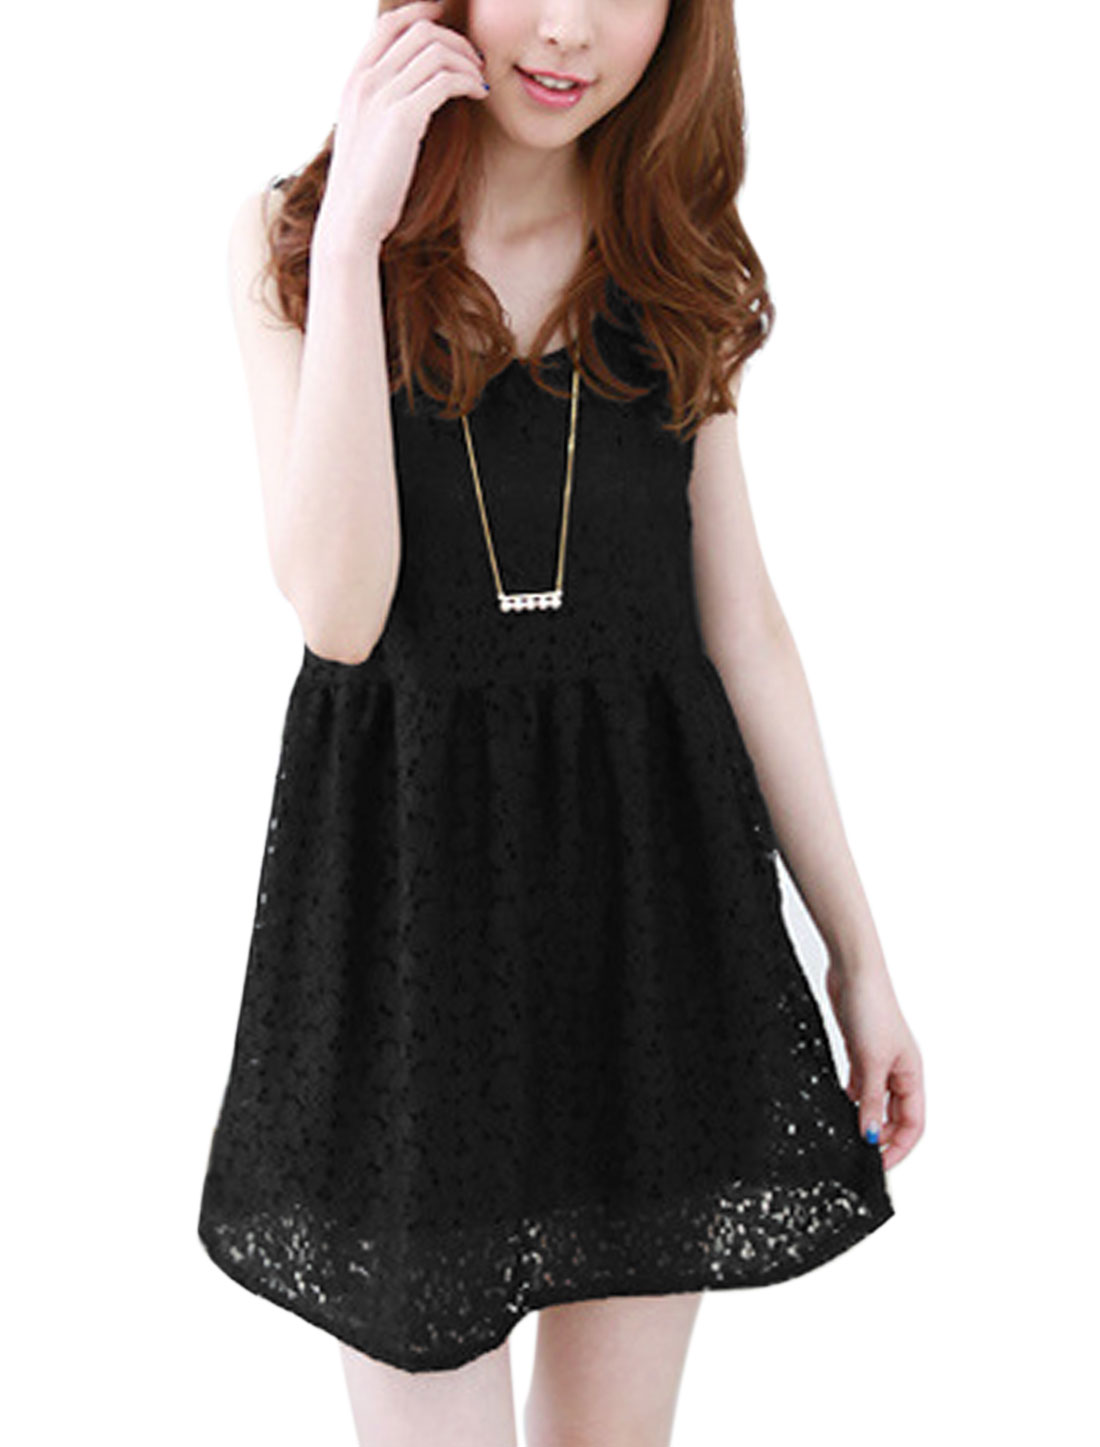 Lady Sleeveless Lace Overlay Flower Design Fully Lined Skater Dress Black S